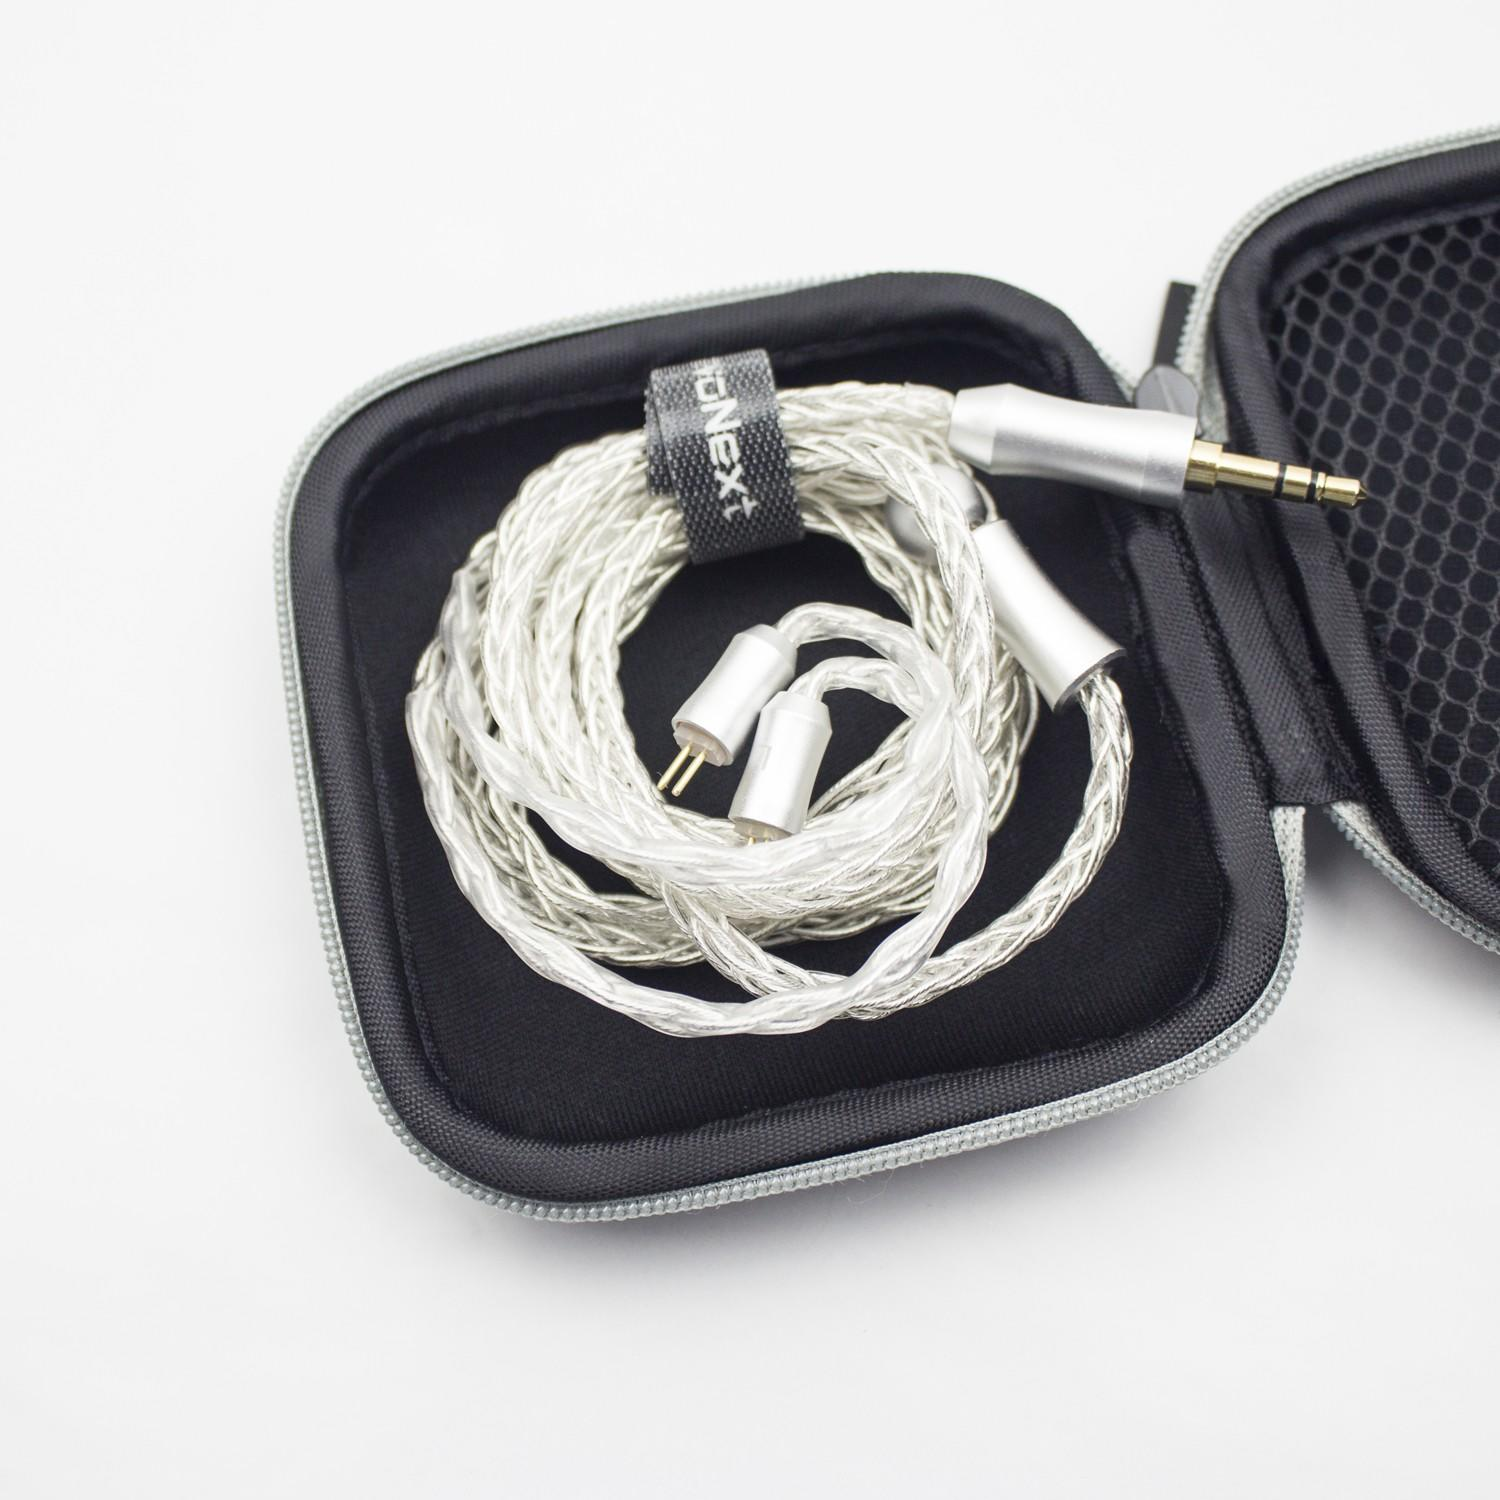 RevoNext earphone pouch best supplier bulk buy